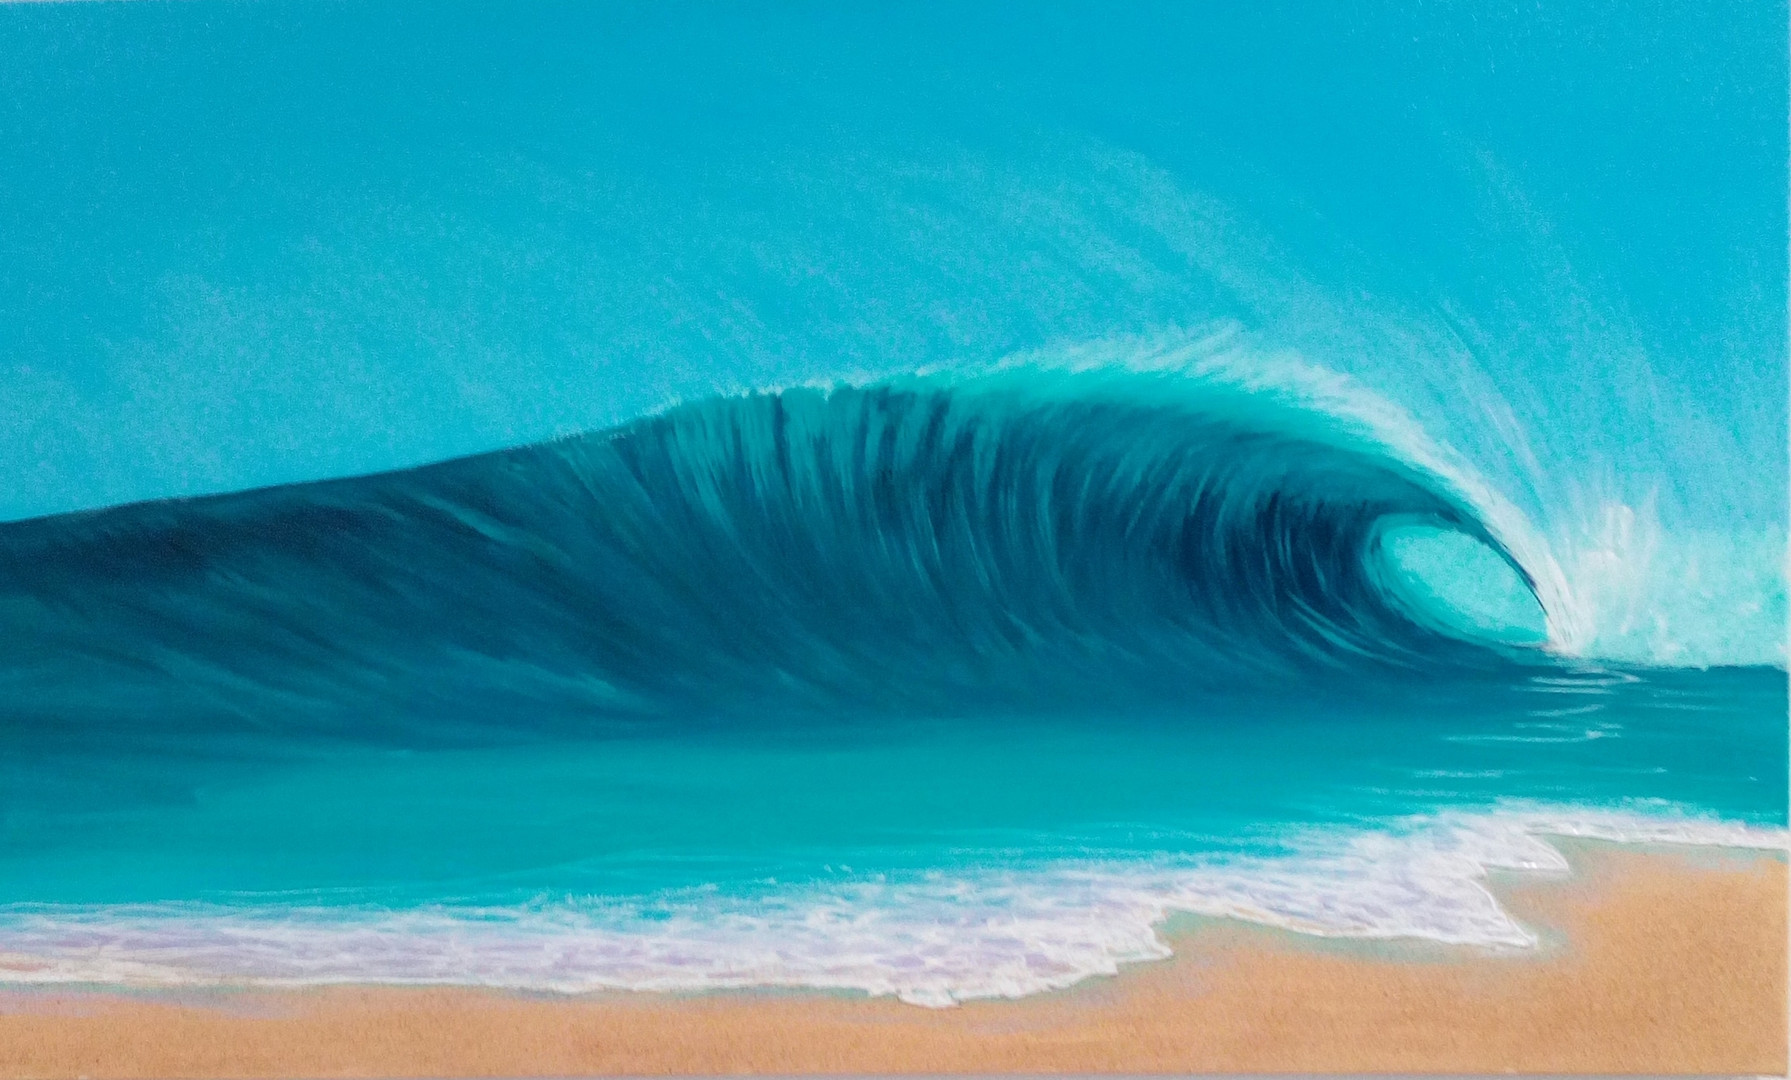 Catching a Wave by Adam Stanley